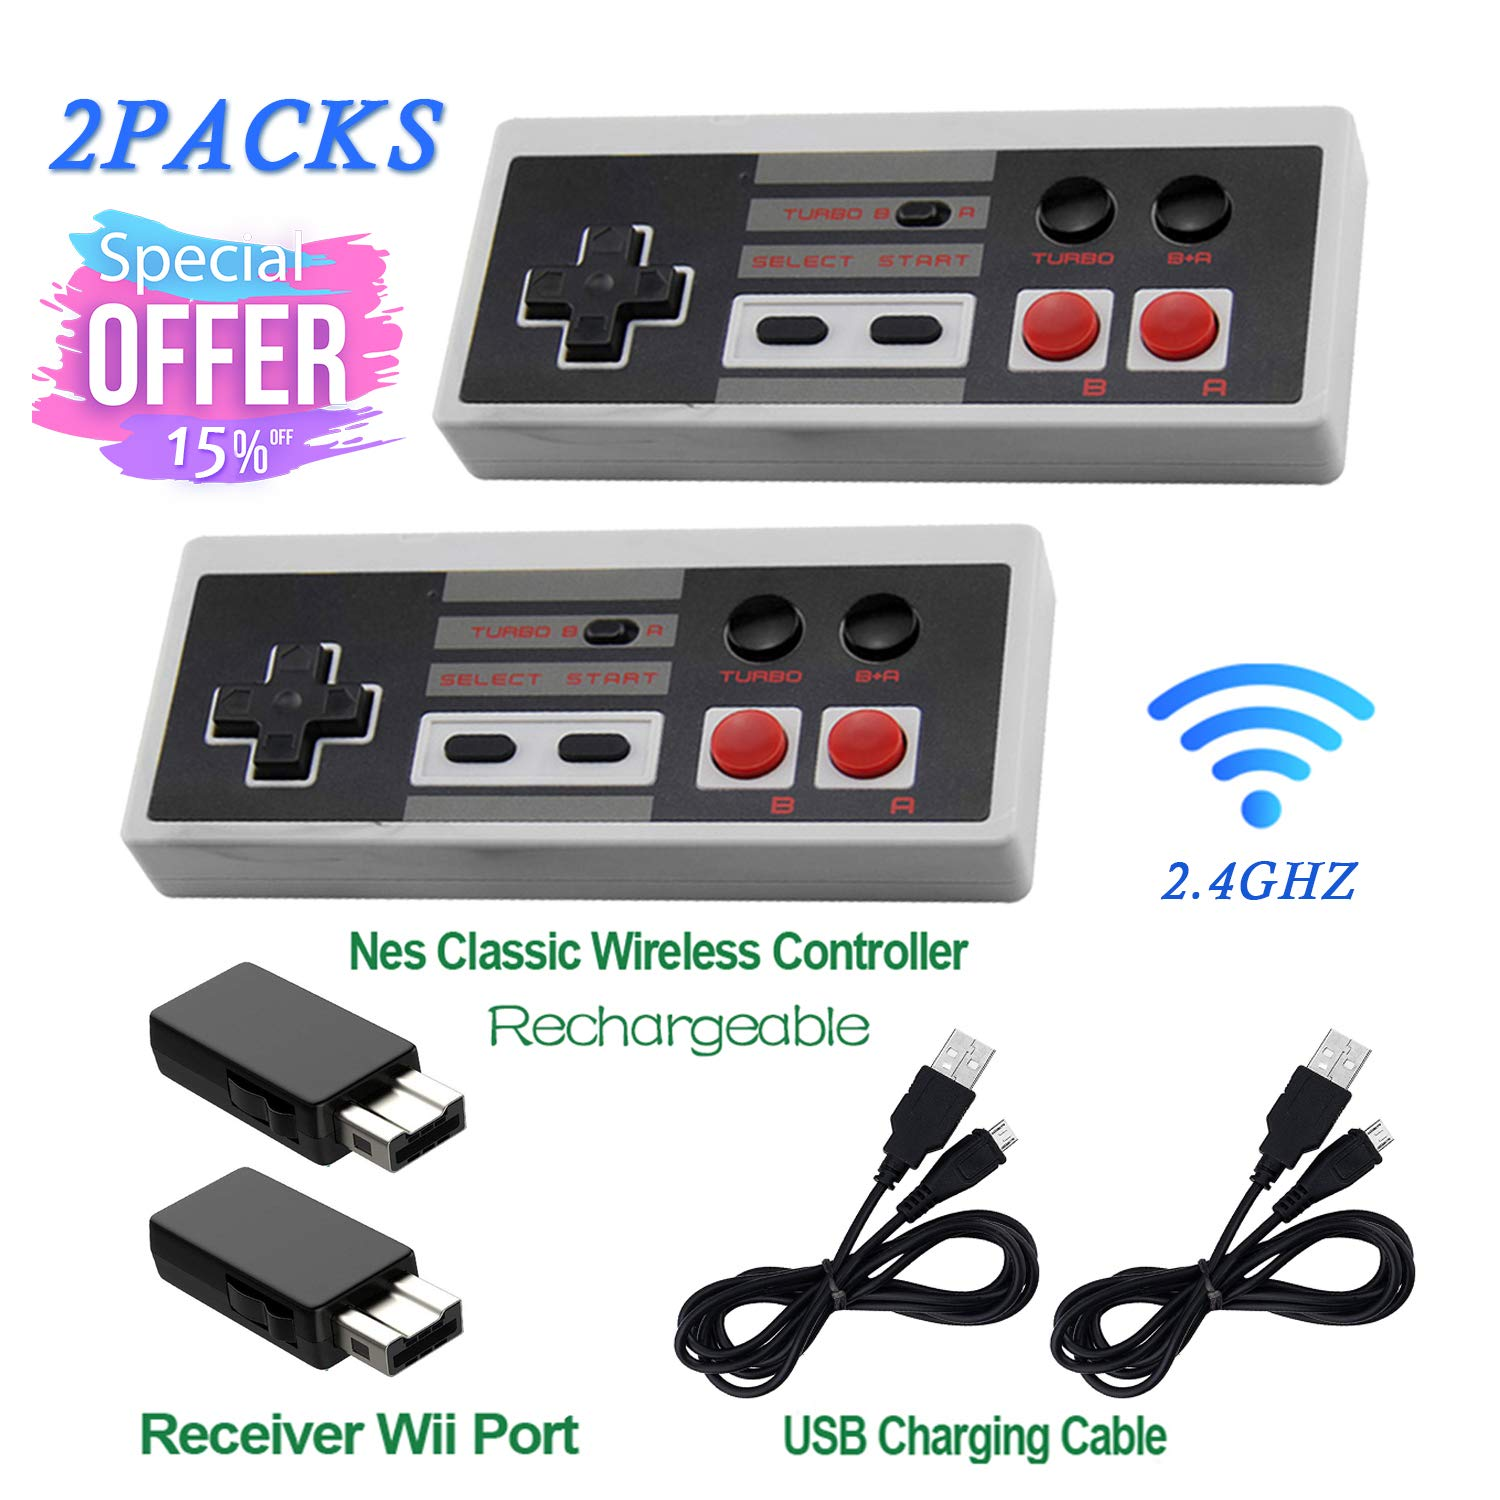 2 Pack Rechargeable NES Classic Mini Wireless Controller -TURBO EDITION-Rapid Buttons Edition for Nes Gaming System with 2.4G Wireless Receiver